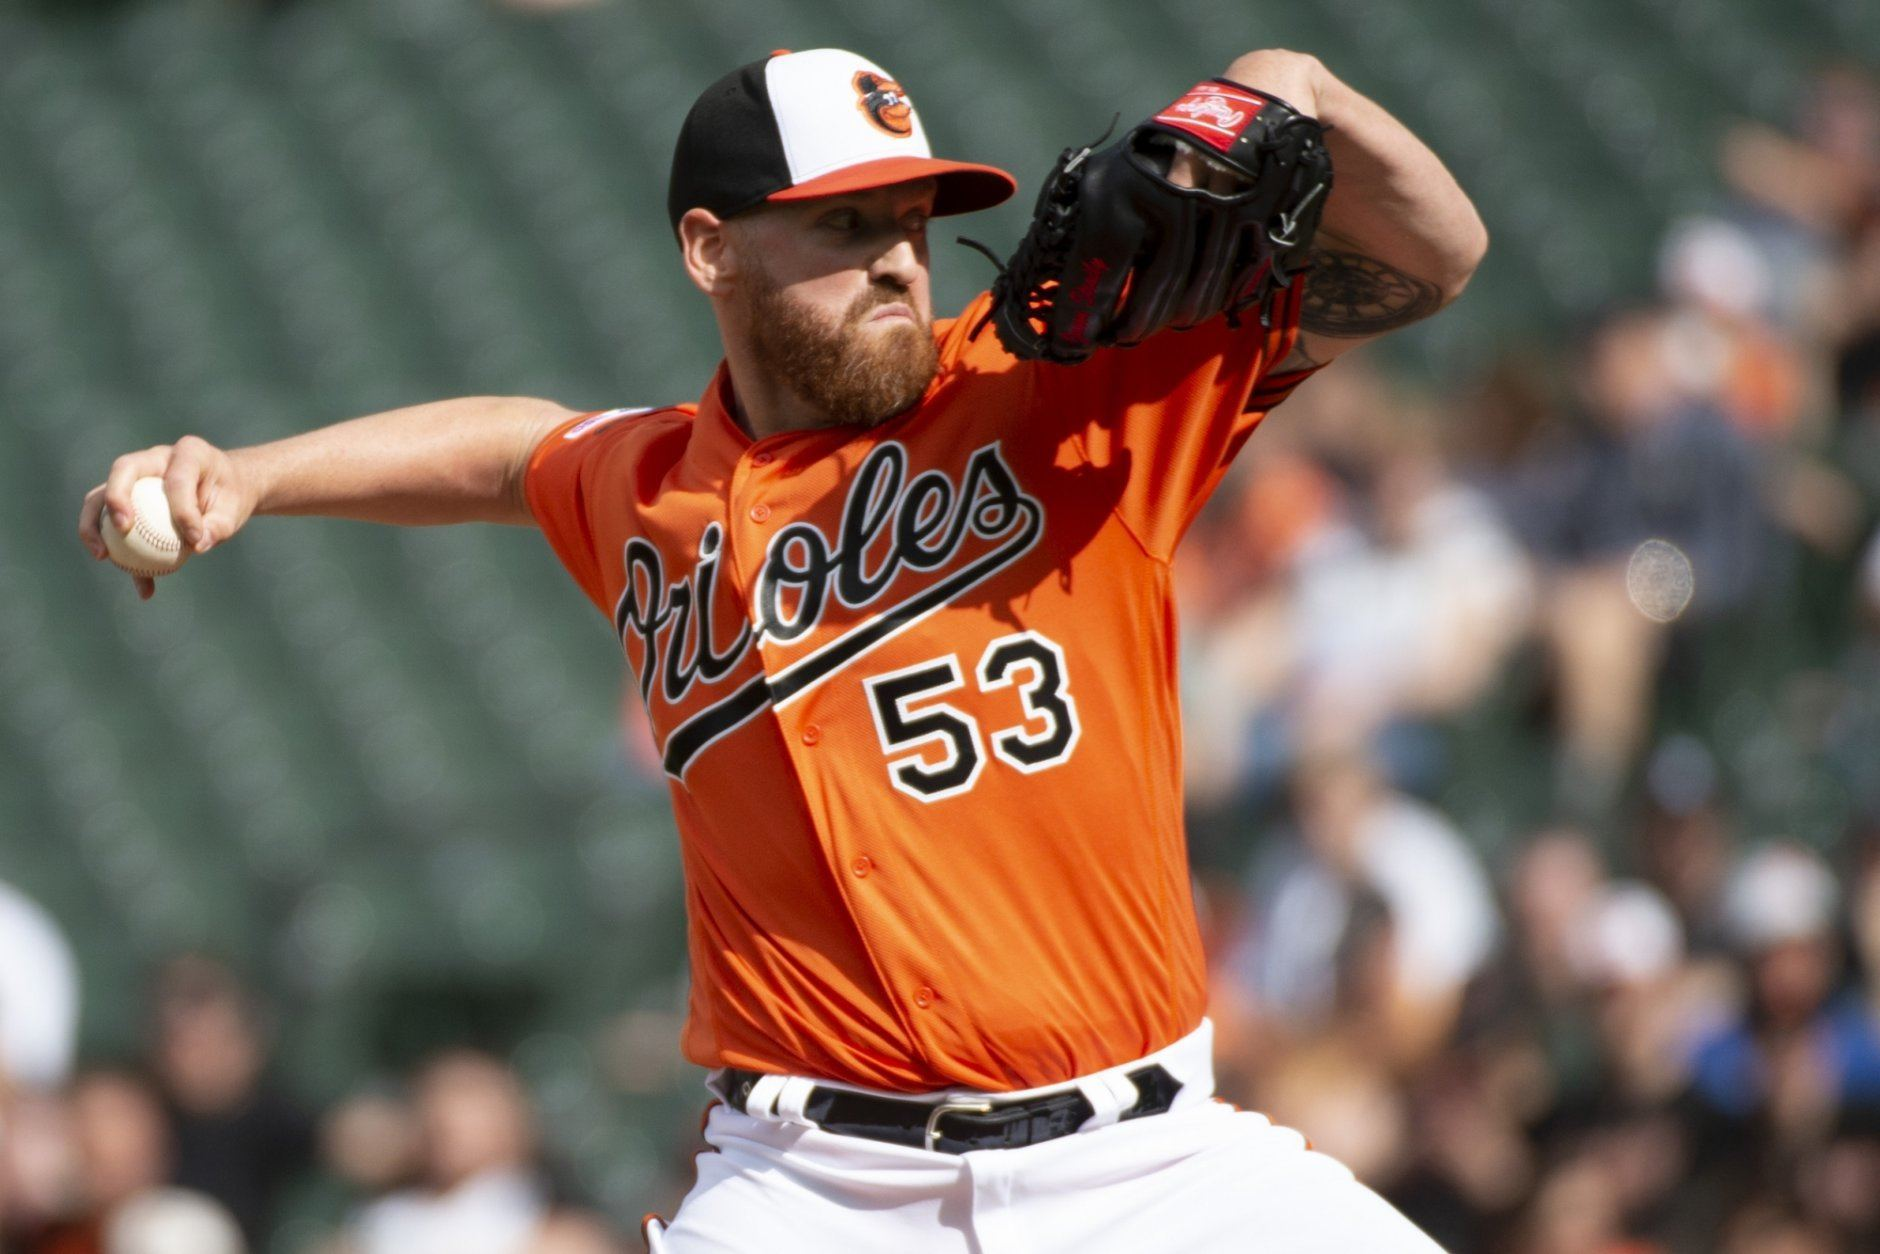 Baltimore Orioles starting pitcher Dan Straily (53) throws in the first inning of a baseball game against the Minnesota Twins, Saturday, April 20, 2019, in Baltimore. (AP Photo/Tommy Gilligan)